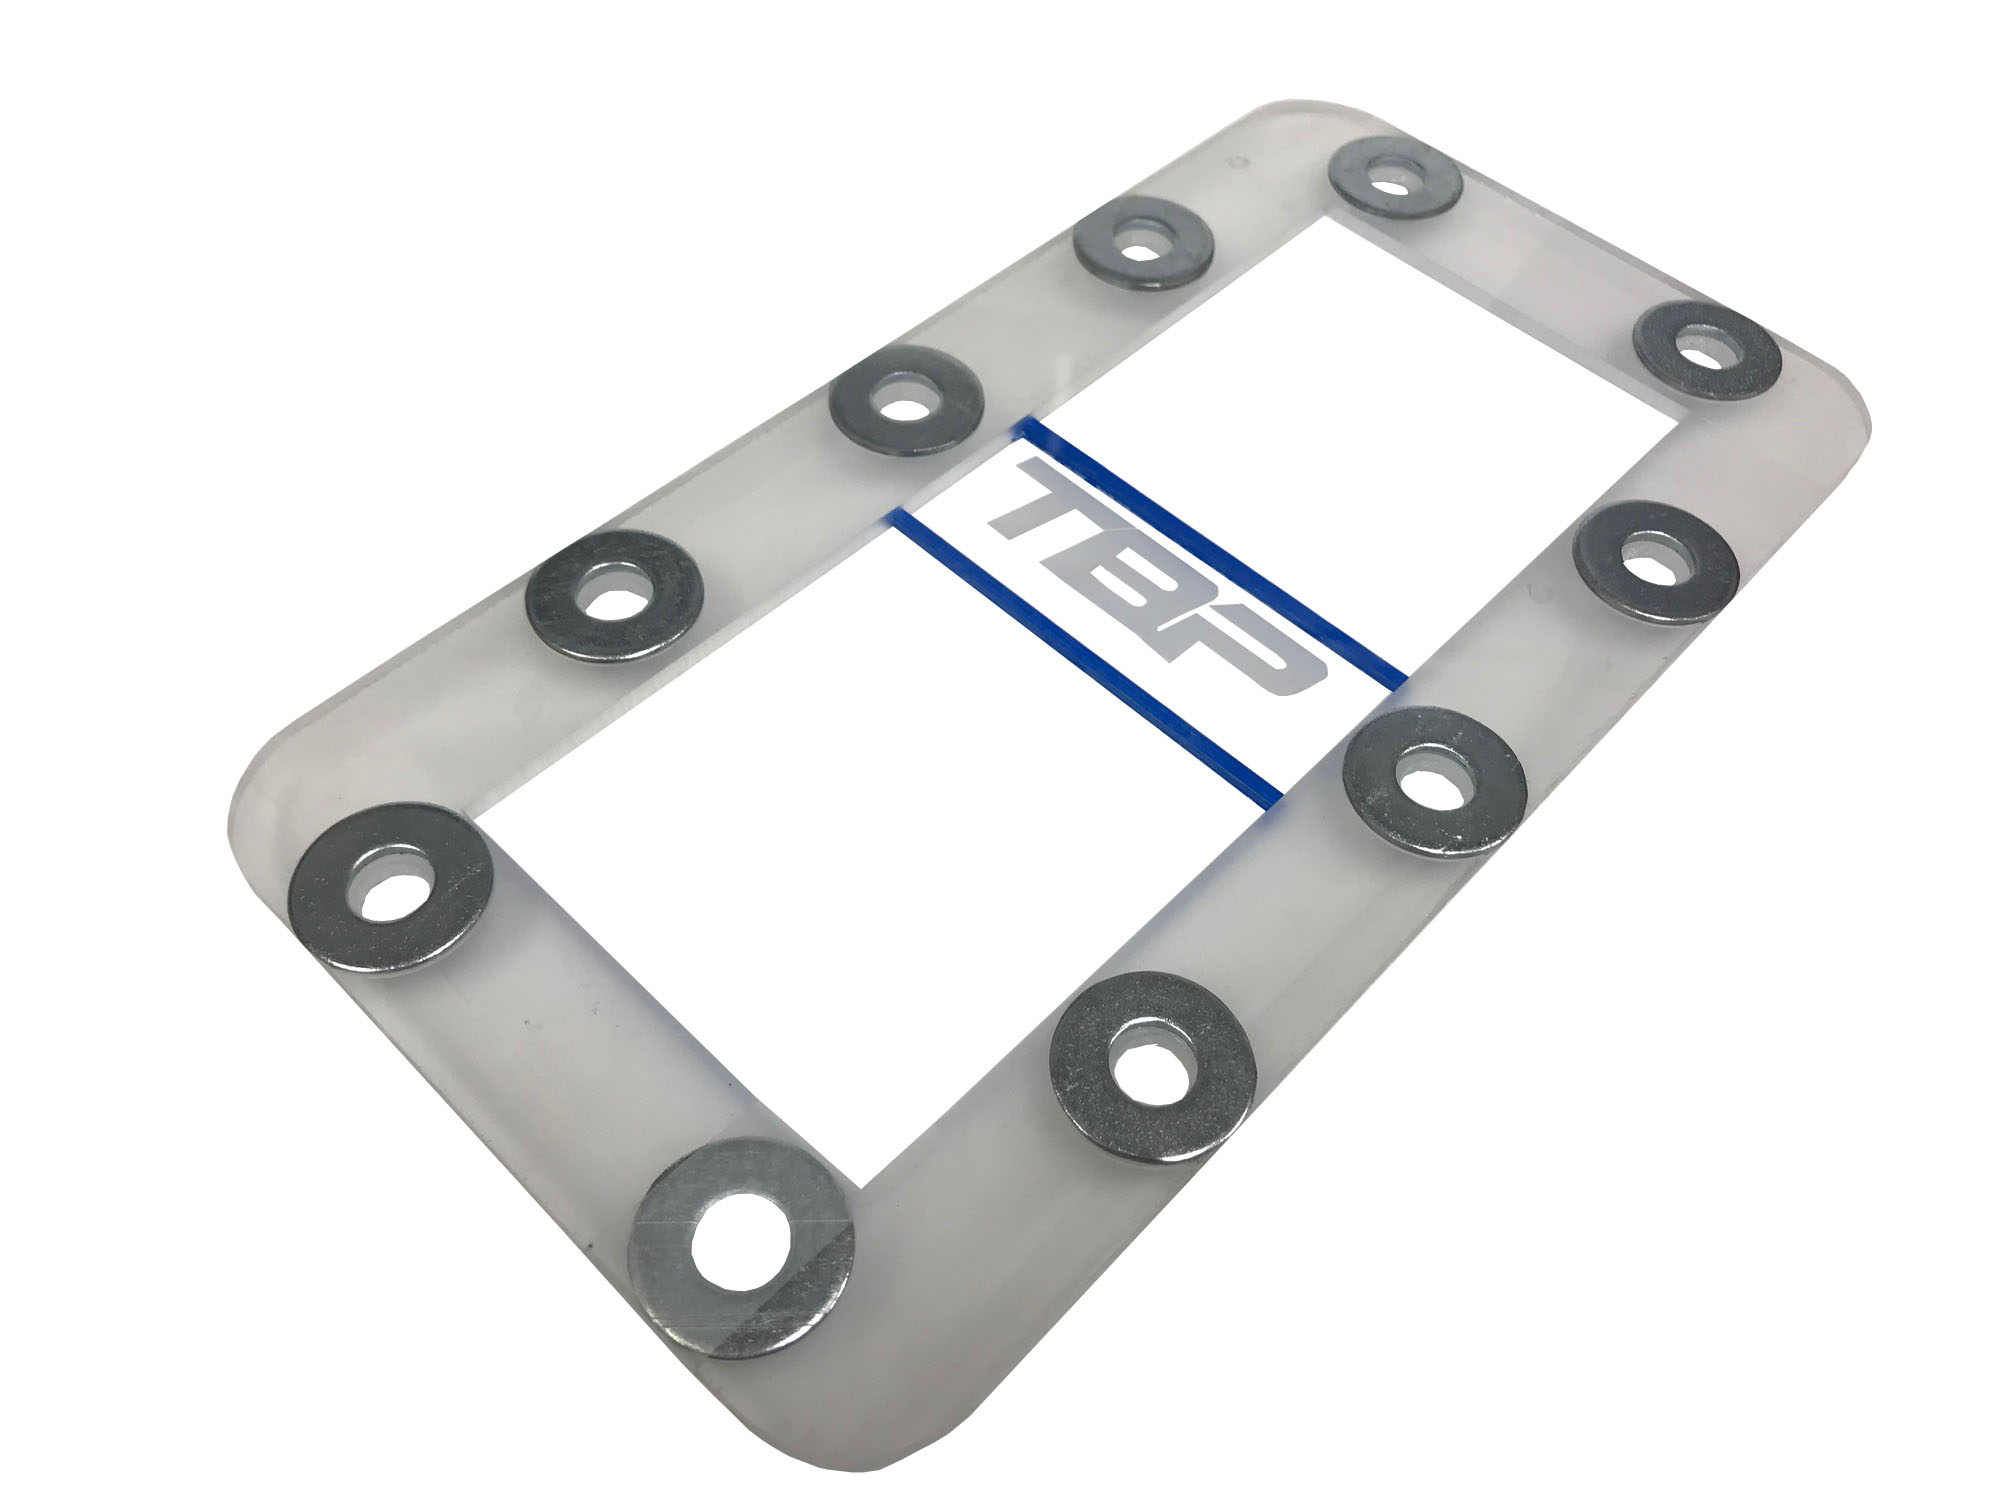 Dana 20 Transfer Case Clear Inspection Cover